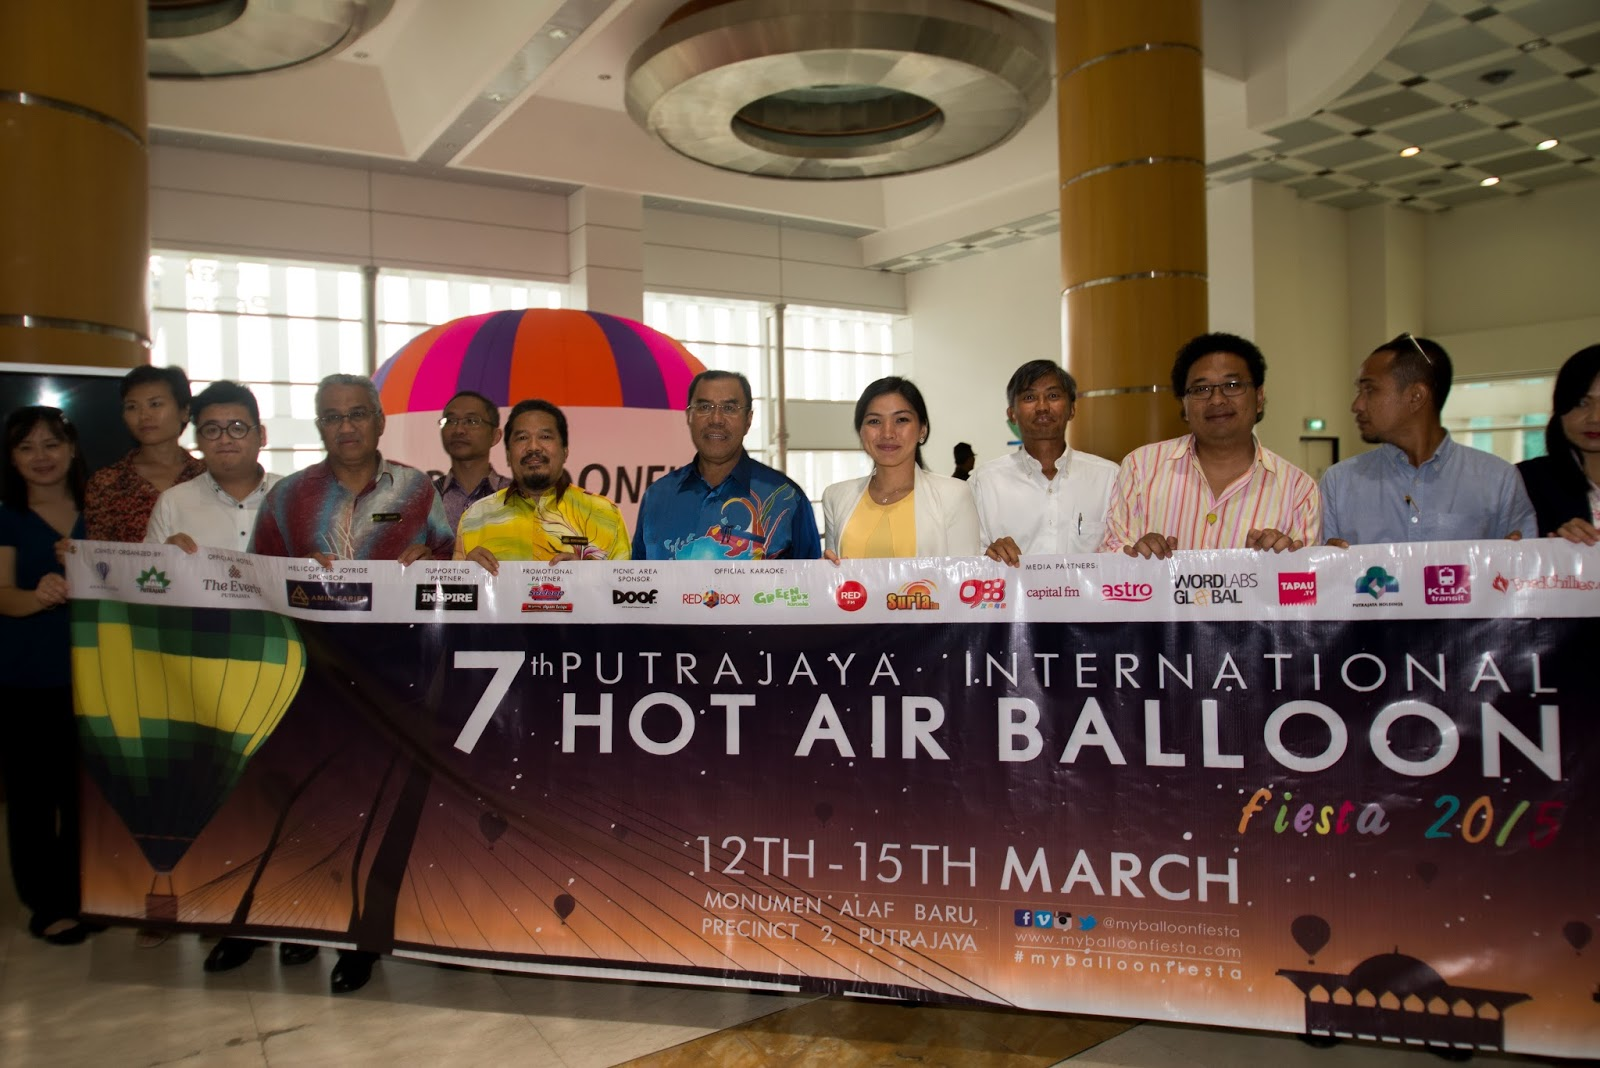 Group photo of 7th Putrajaya International Hot Air Balloon Fiesta 2015 organisers, sponsors and partners